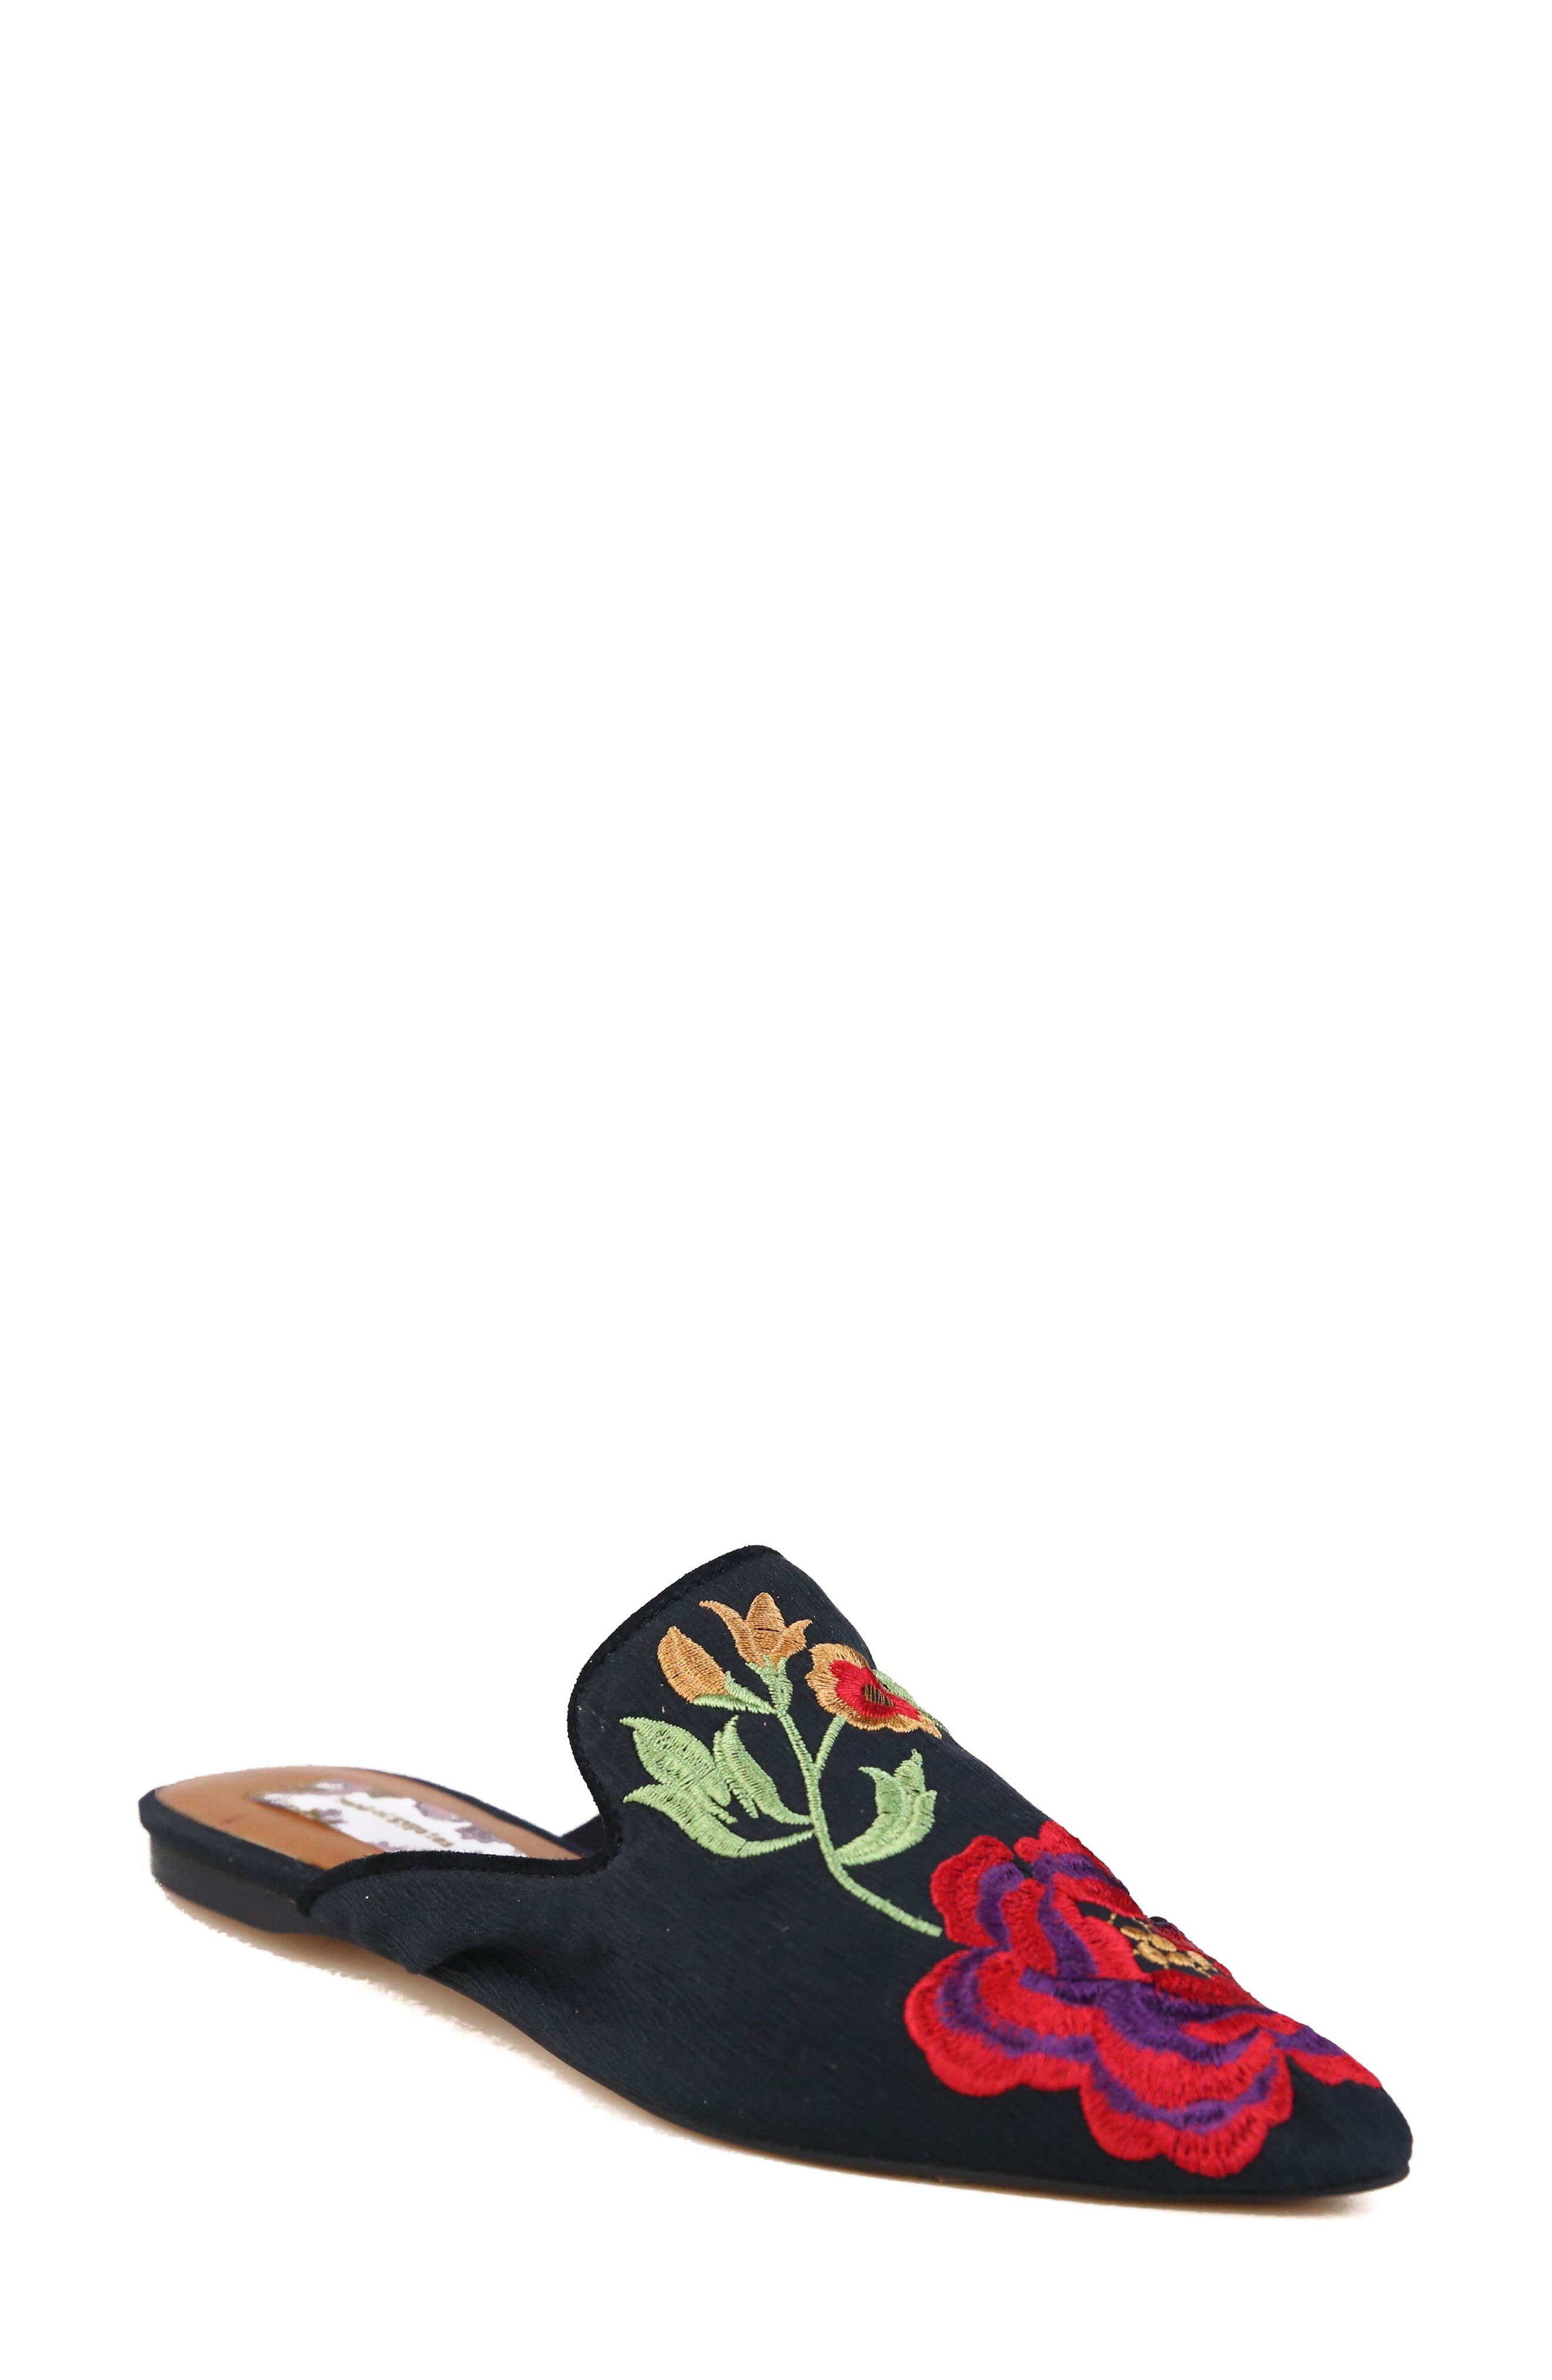 BAND OF GYPSIES,                             Landslide Embroidered Mule Flat,                             Main thumbnail 1, color,                             001